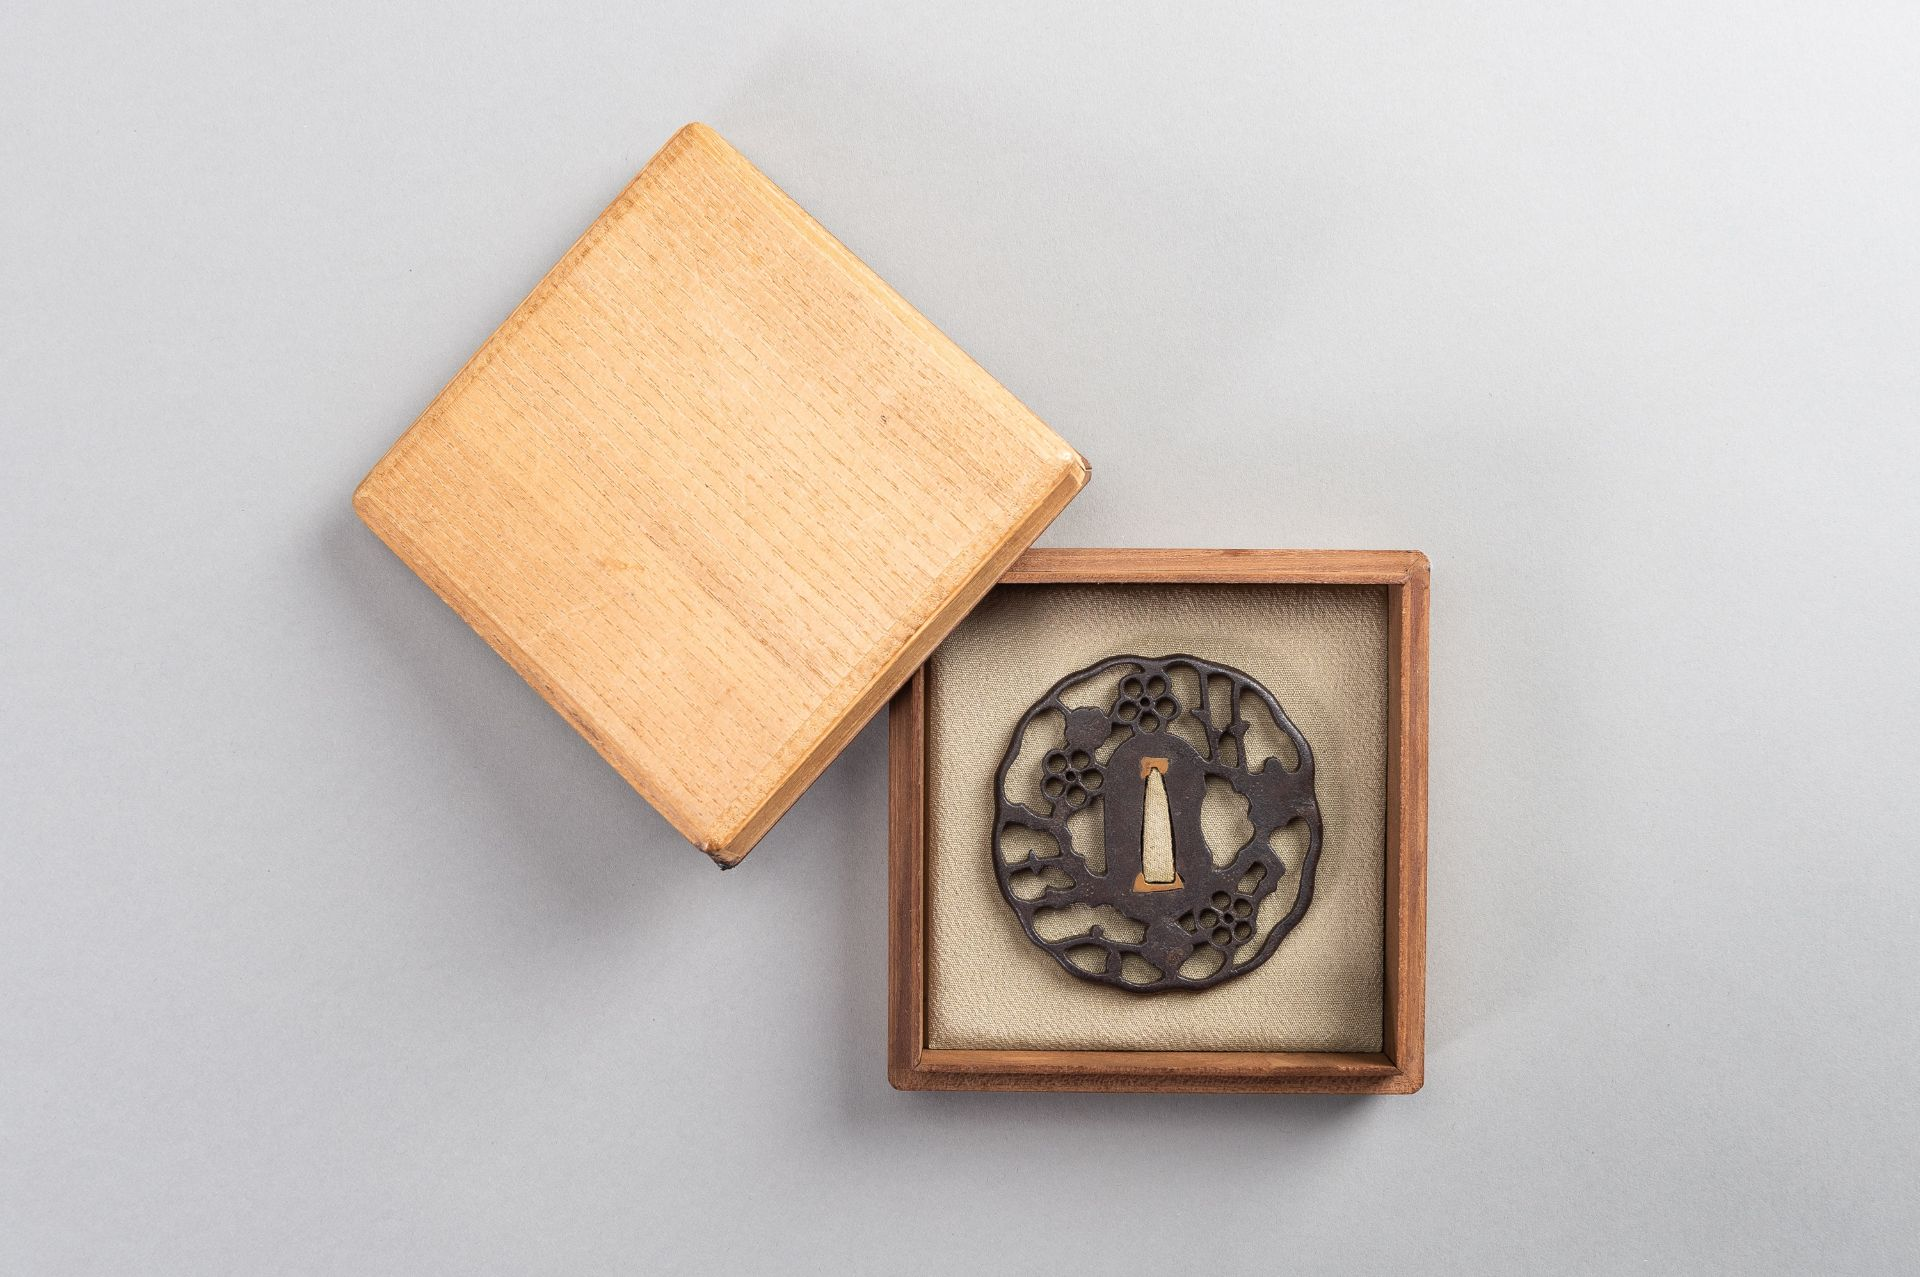 AN IRON SUKASHI-TSUBA WITH FLOWERS AND CLOUDS - Image 2 of 7